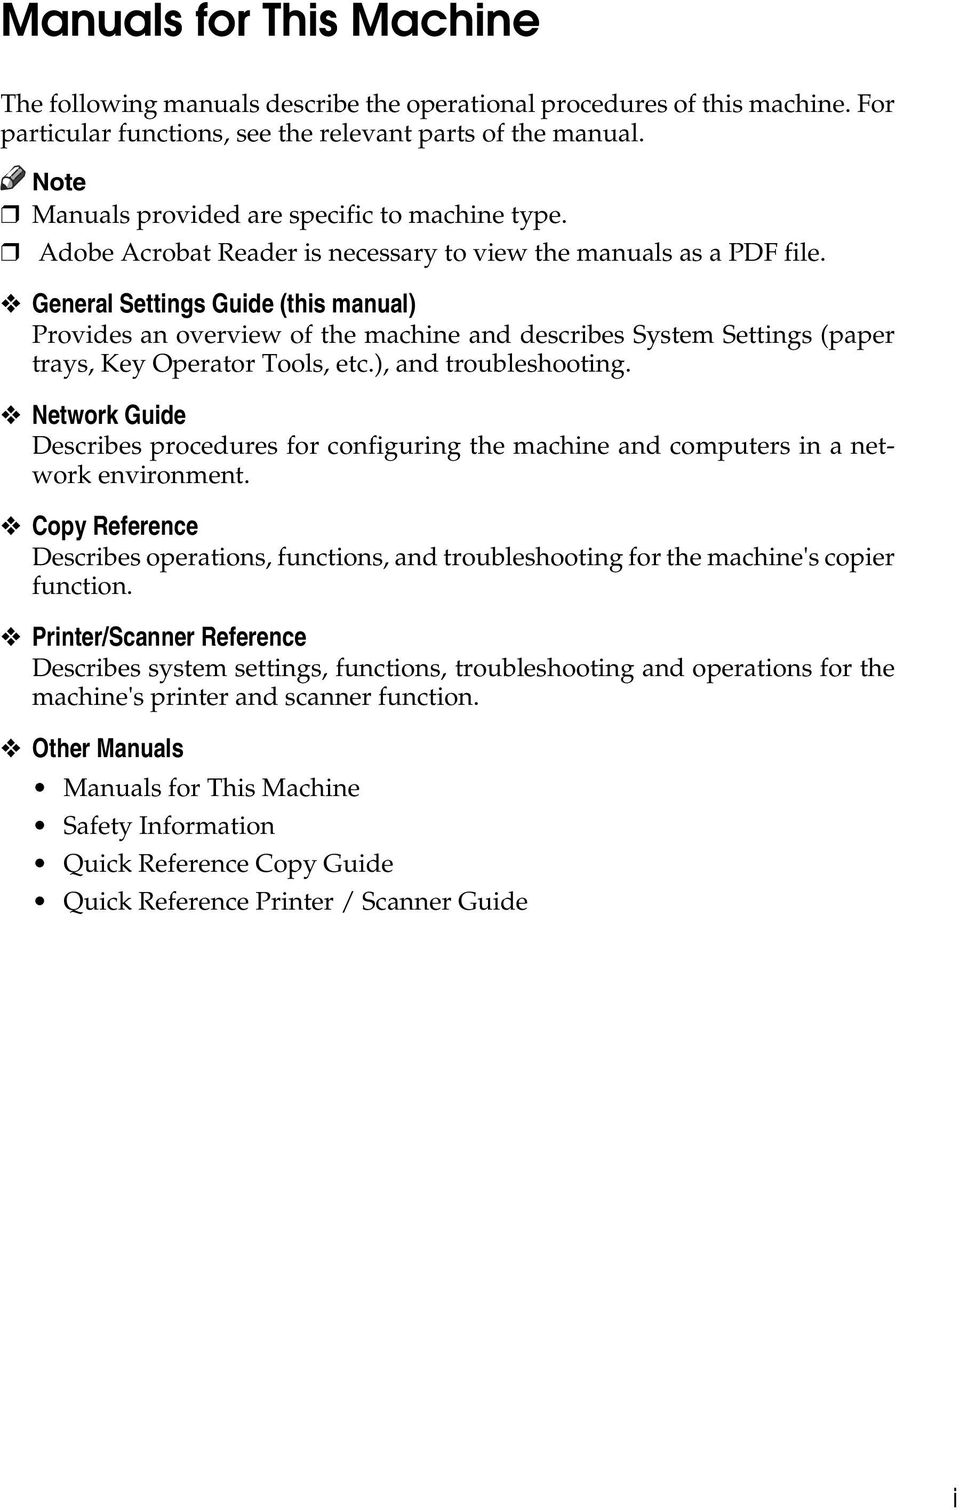 General Settings Guide (this manual) Provides an overview of the machine and describes System Settings (paper trays, Key Operator Tools, etc.), and troubleshooting.